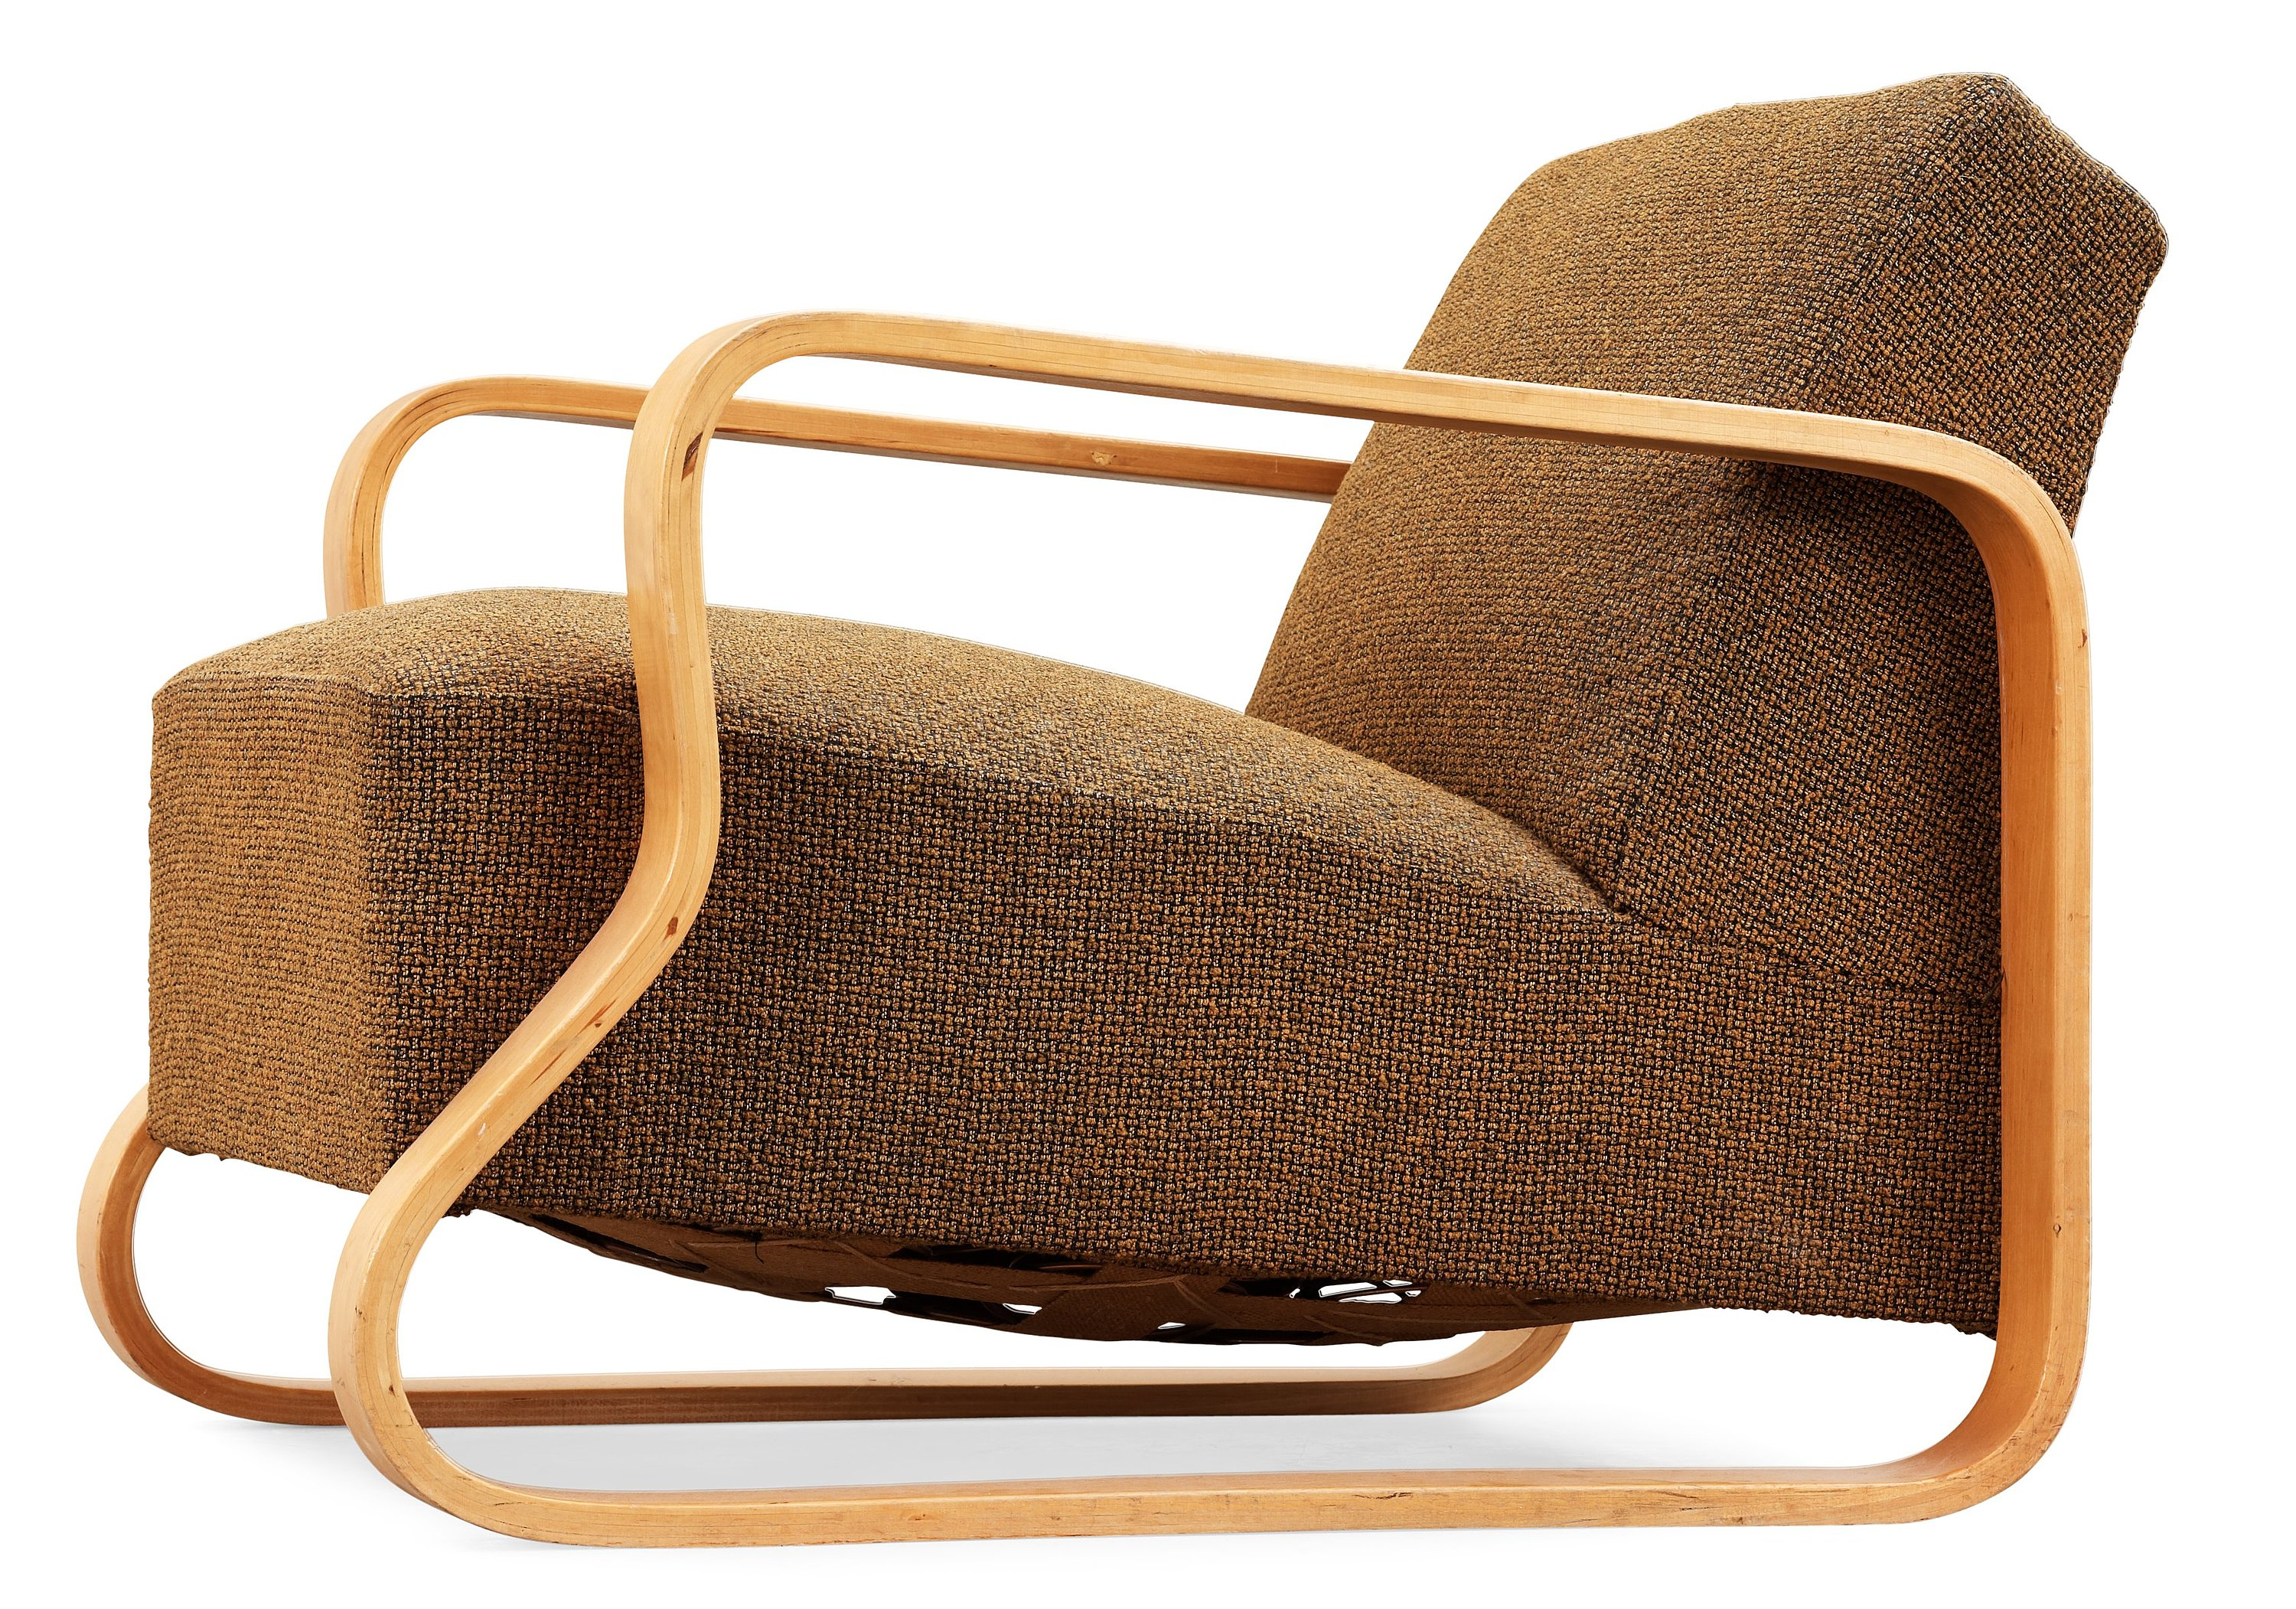 An Alvar Aalto laminated birch 'padded Paimio chair', upholstered in yellow and black fabric.